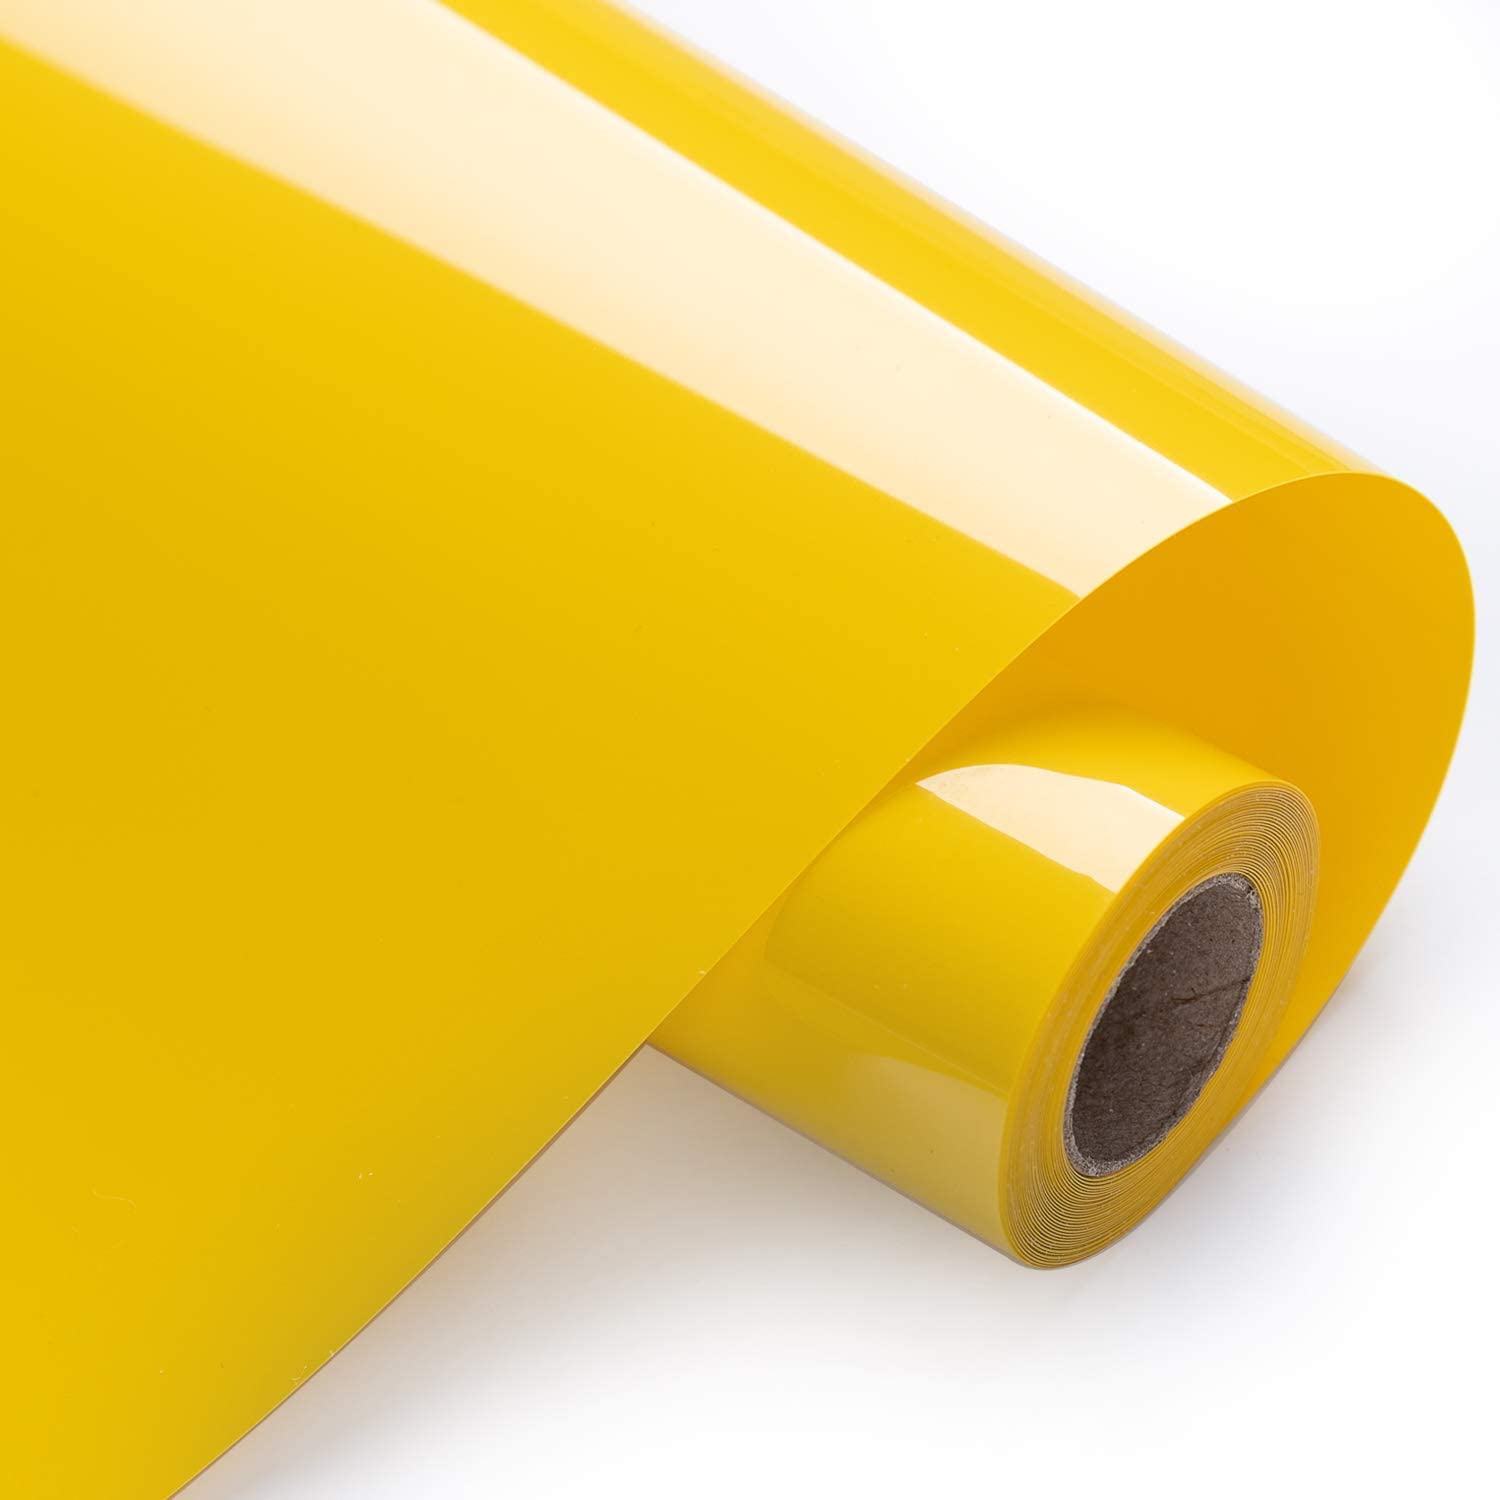 HTV Iron on Vinyl 12inch x10 Feet Roll for Silhouette and Cricut Easy to Cut /& Weed Iron on Heat Transfer Vinyl DIY Heat Press Design for T-Shirts Yellow